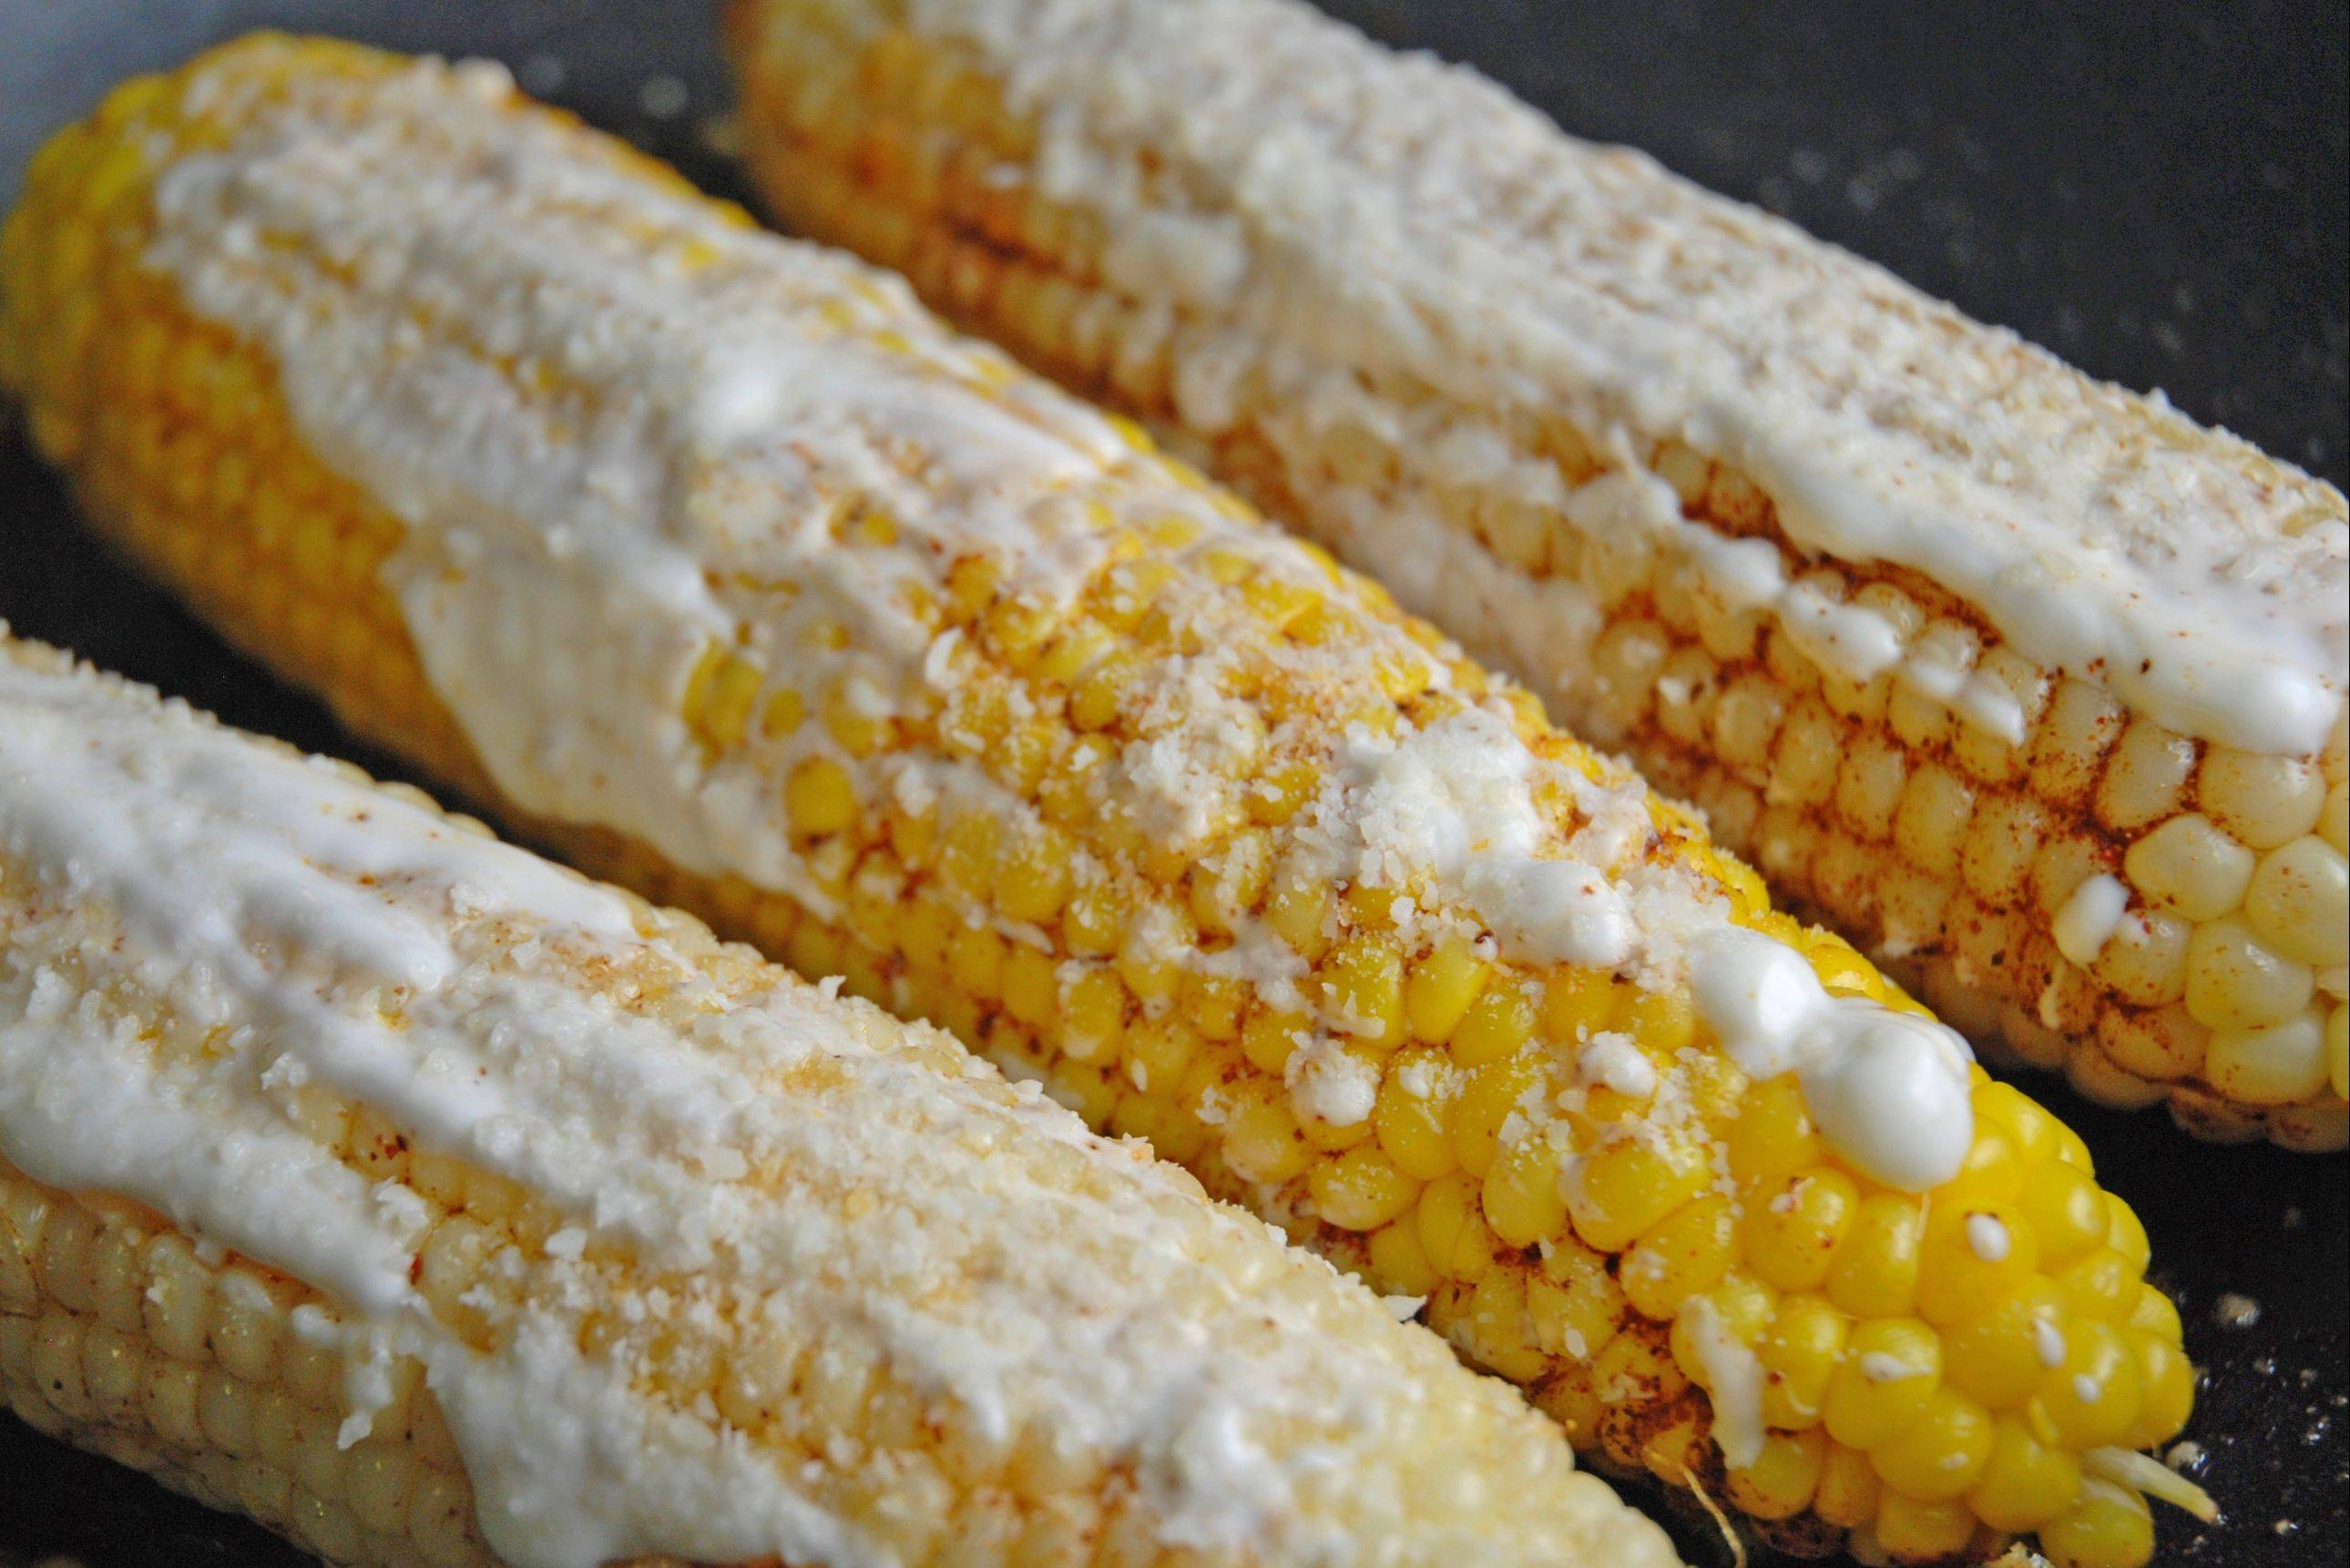 Once you try this Mexican-style corn on the cob you'll never eat plain corn again!